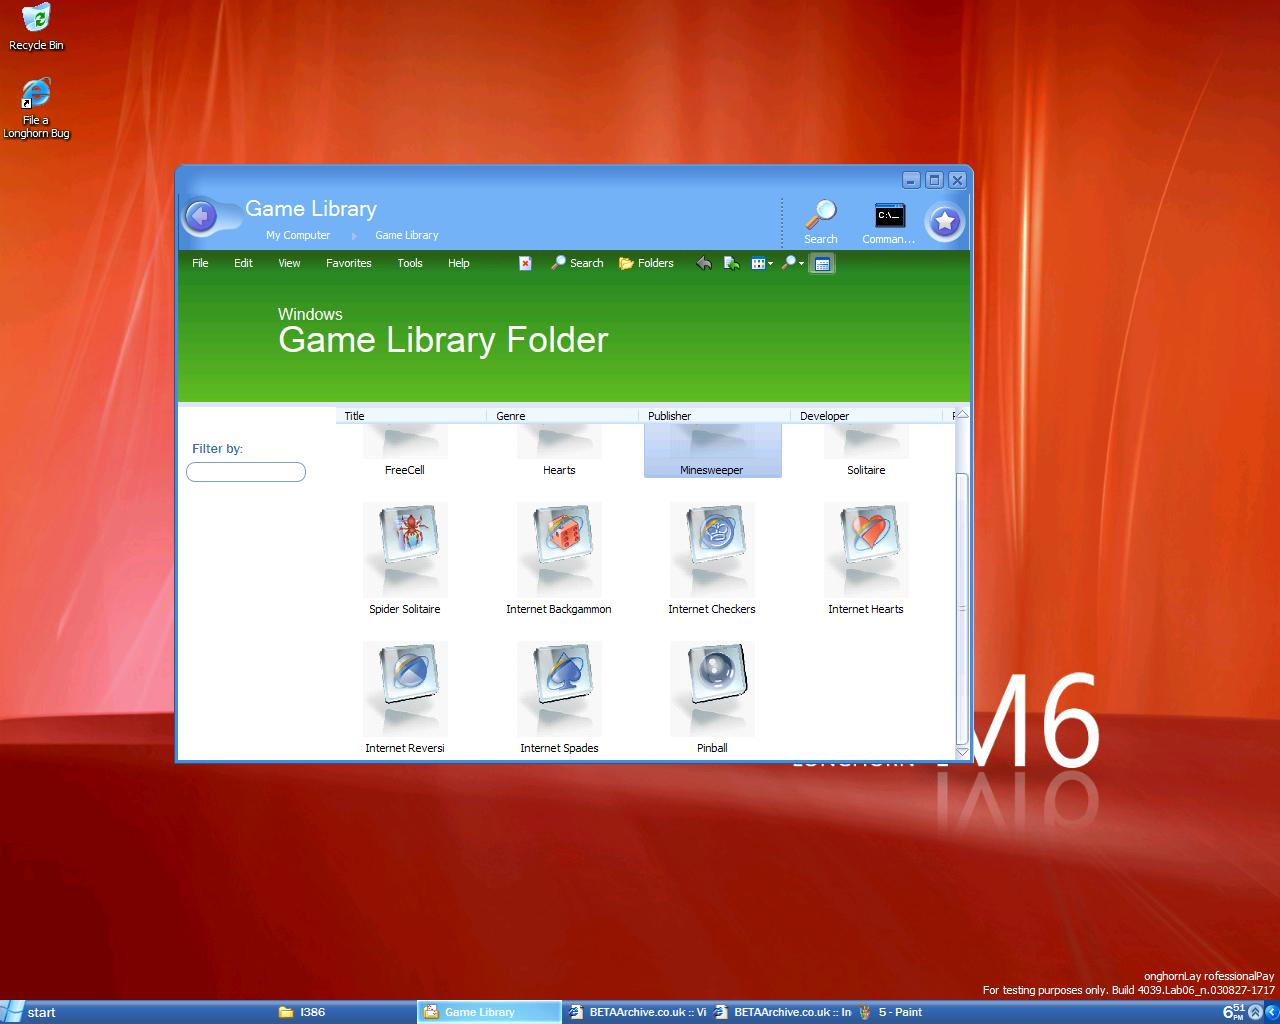 Download windows 7 ultimate build 7600 activator torrent 32 bit. Your crac